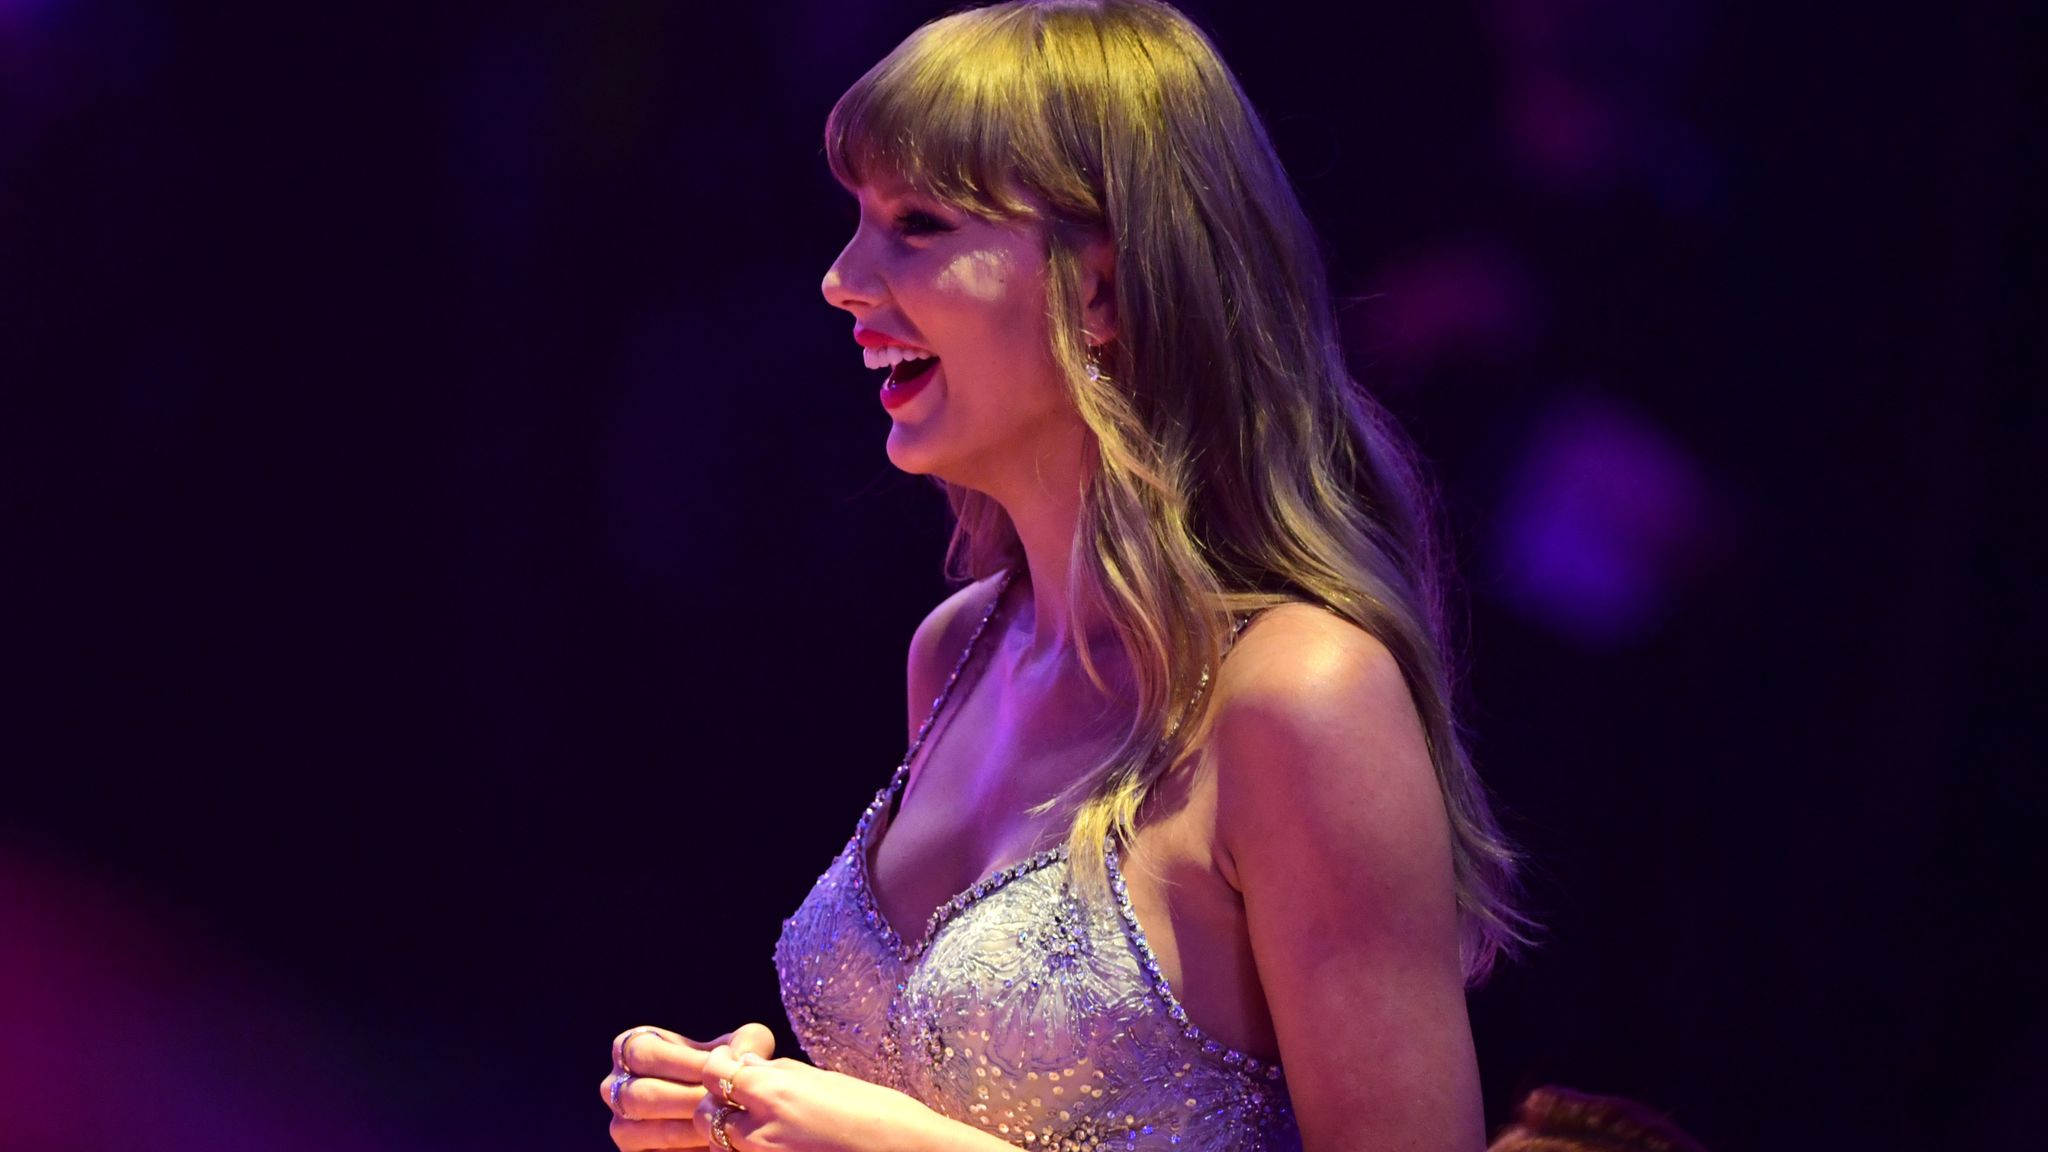 Brit Awards 2021 live: Taylor Swift pays tribute to NHS and key workers as  she picks up global icon award | Ents & Arts News | Sky News